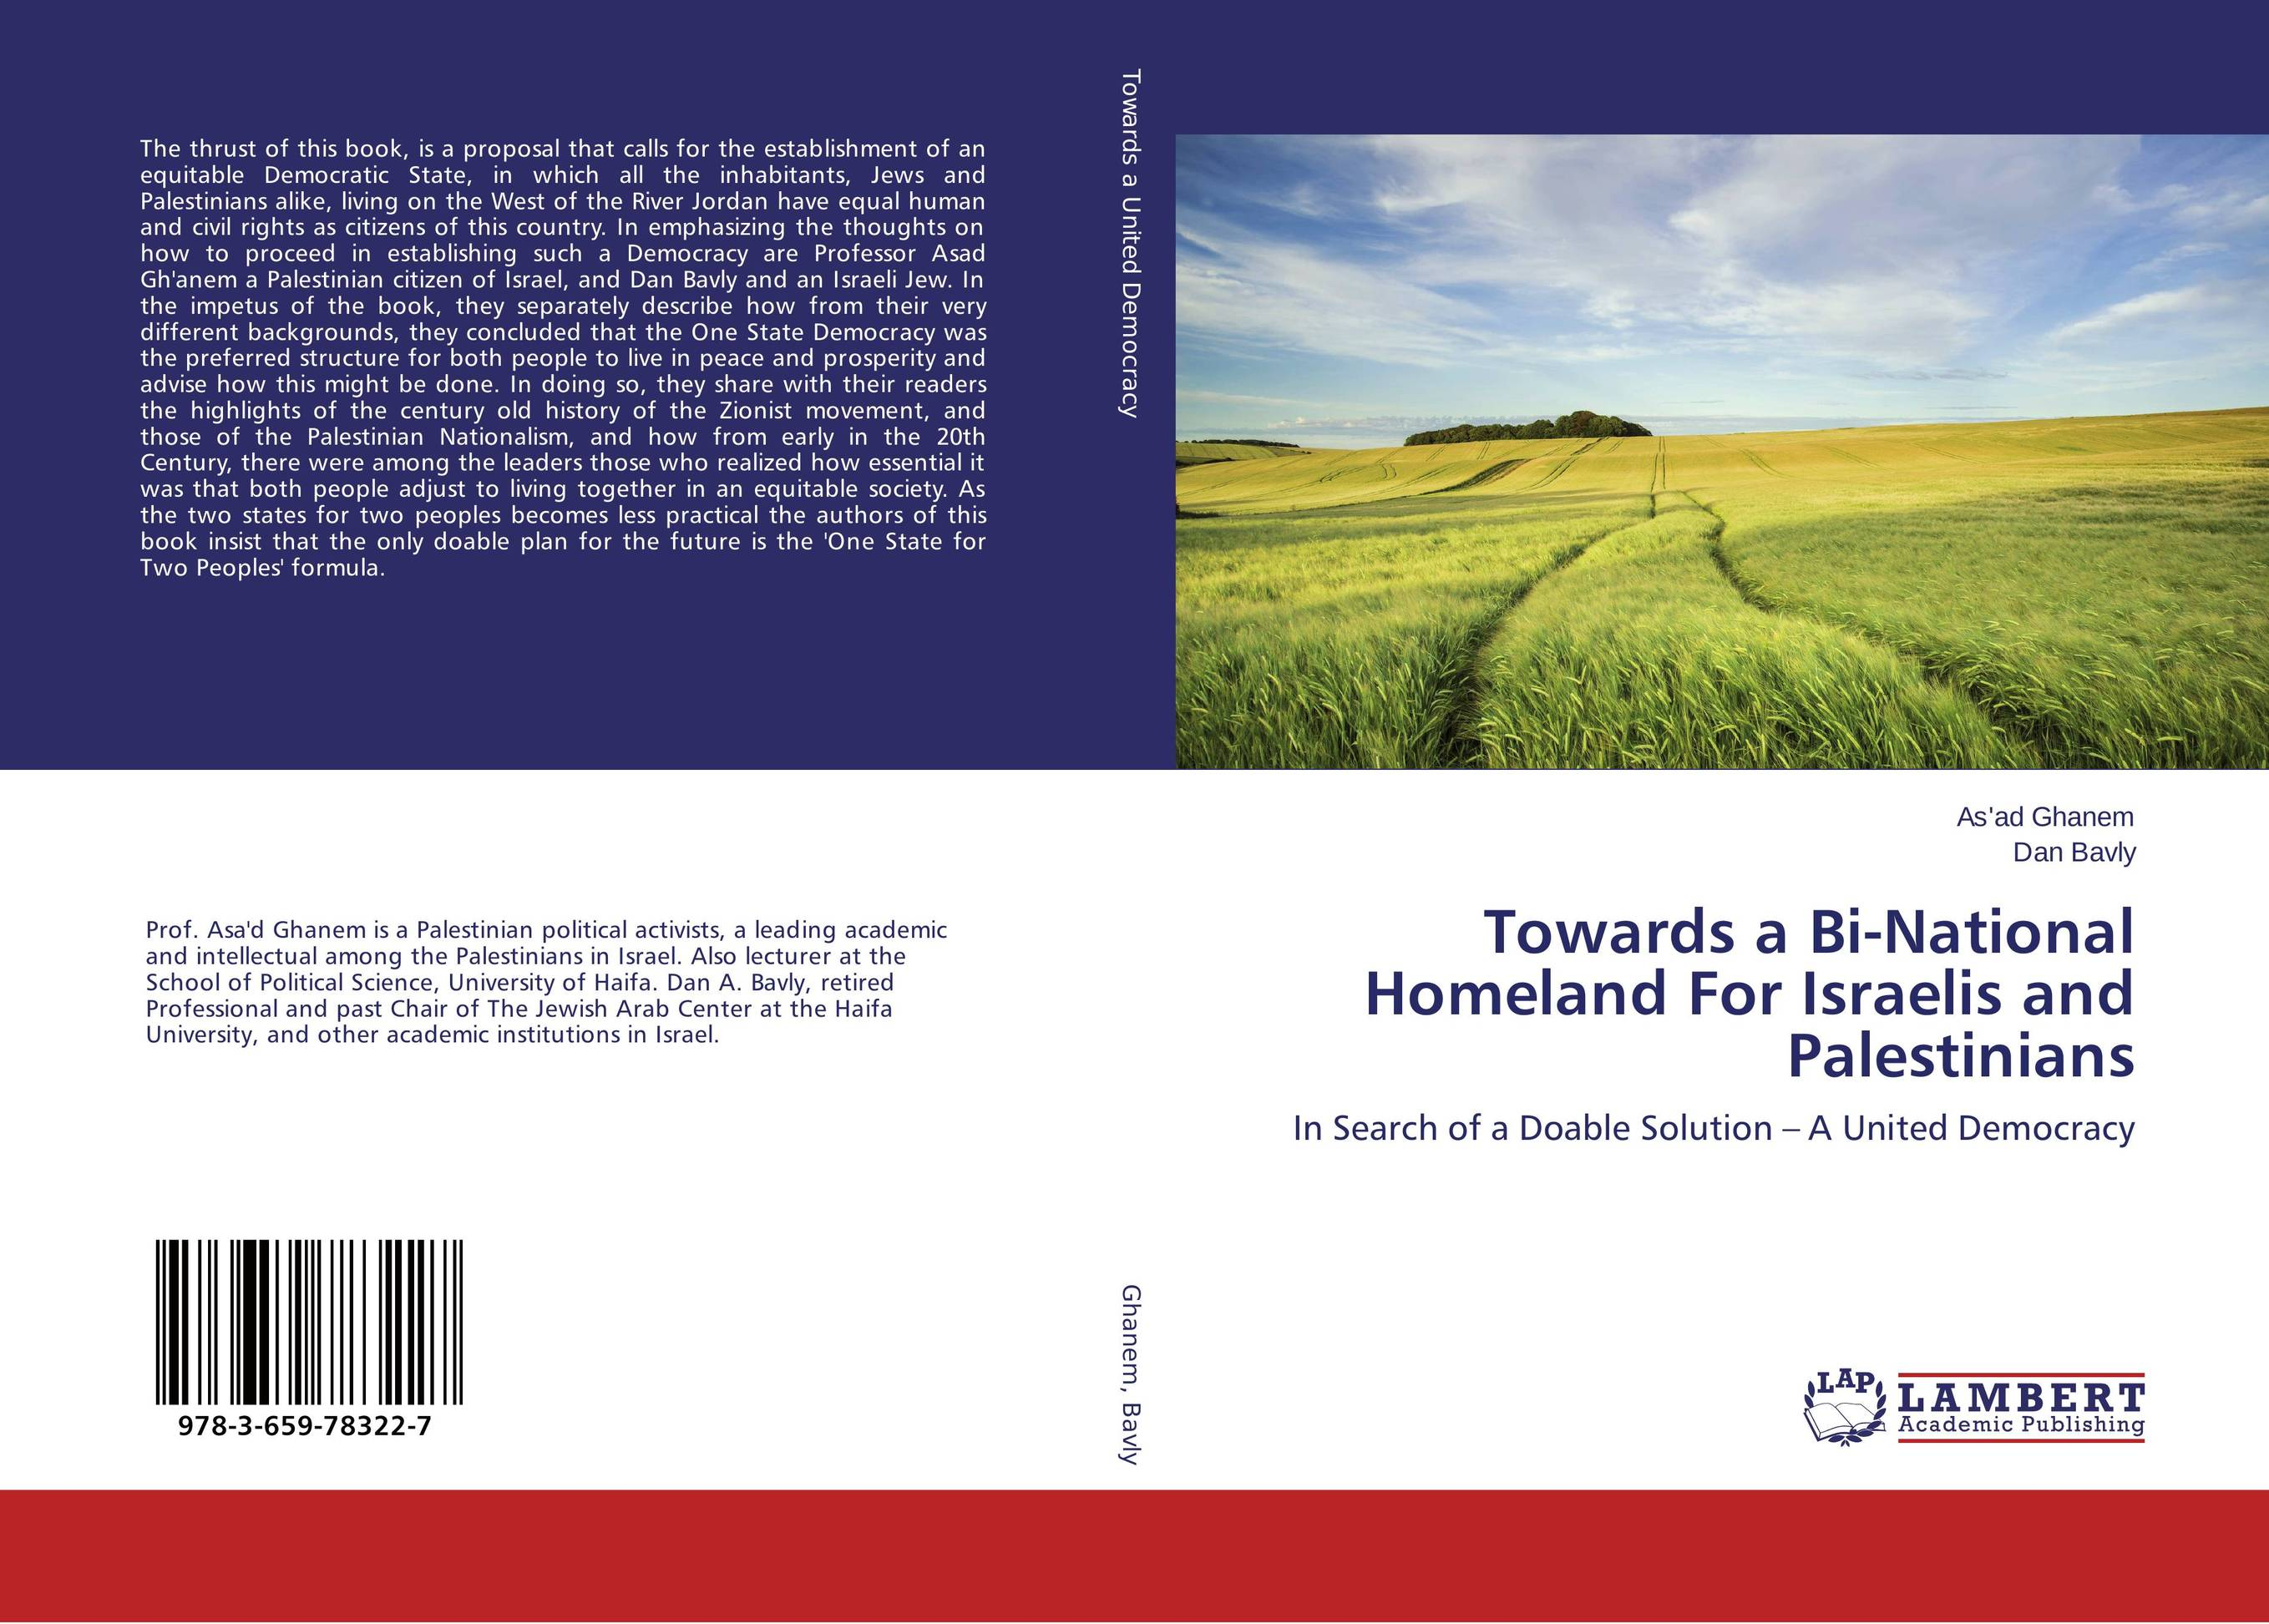 Towards a Bi-National Homeland For Israelis and Palestinians affair of state an